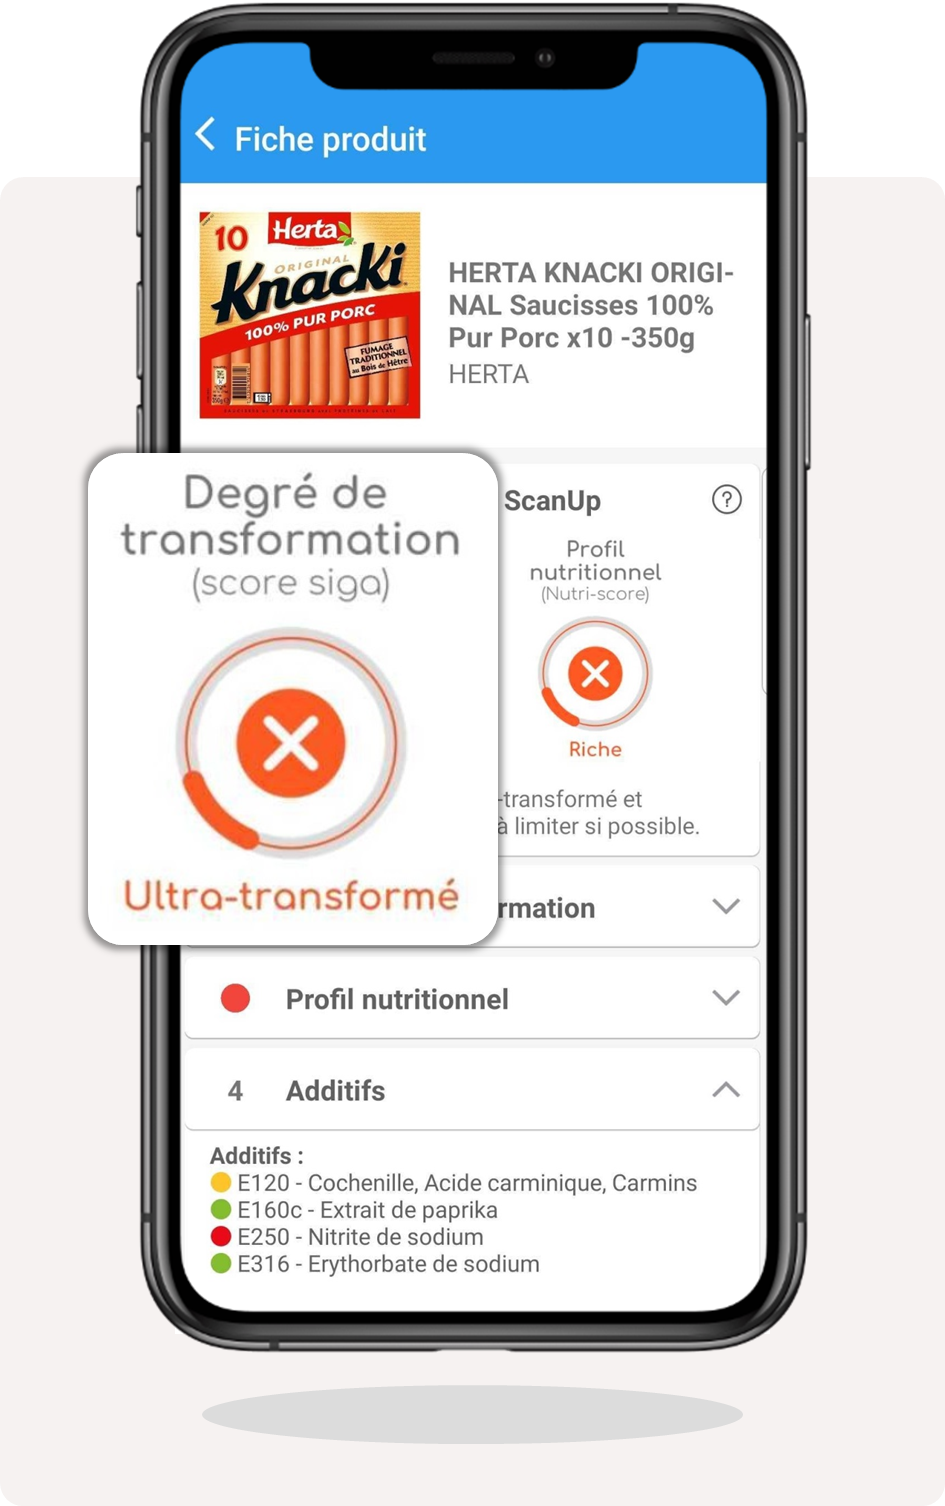 application, scan, produit, scanup, siga, nova, degre, transformation, transforme, ultra-transforme